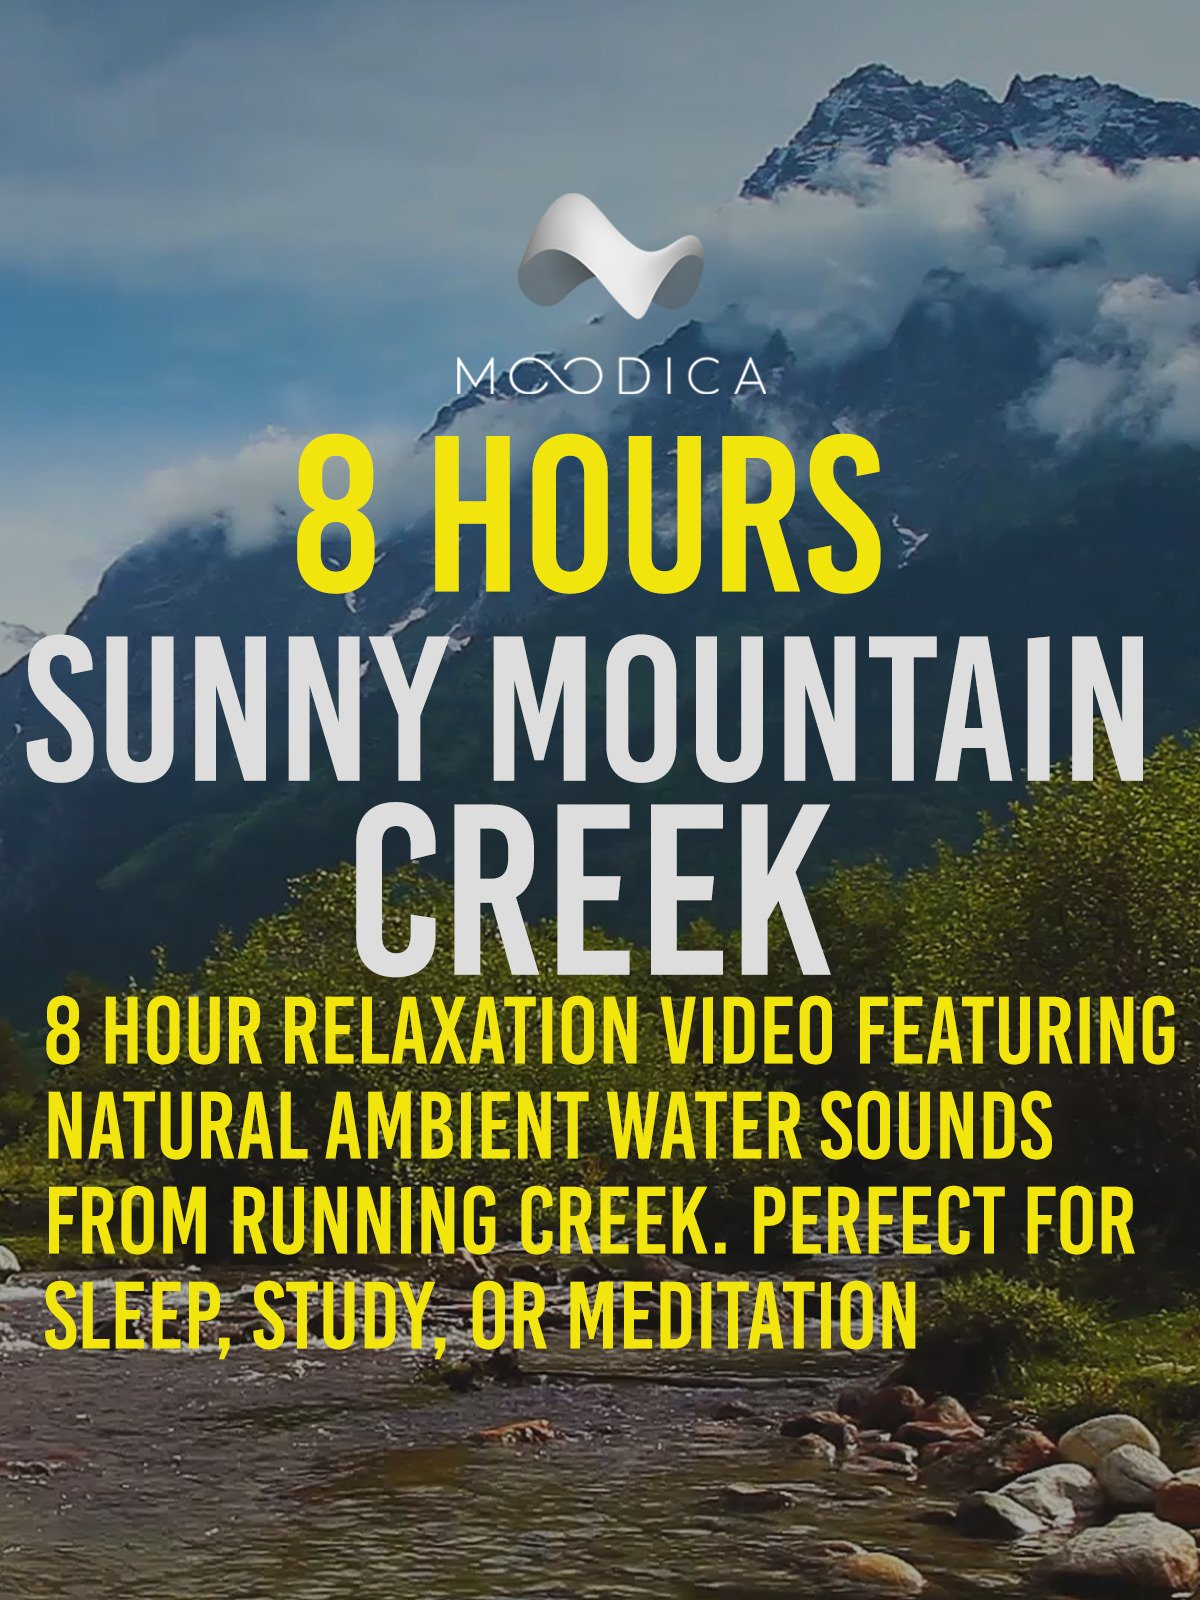 8 Hours: Sunny Mountain Creek: 8 Hour Relaxation Video Featuring Natural Ambient Water Sounds From Running Creek. Perfect for Sleep, Study, or Meditation